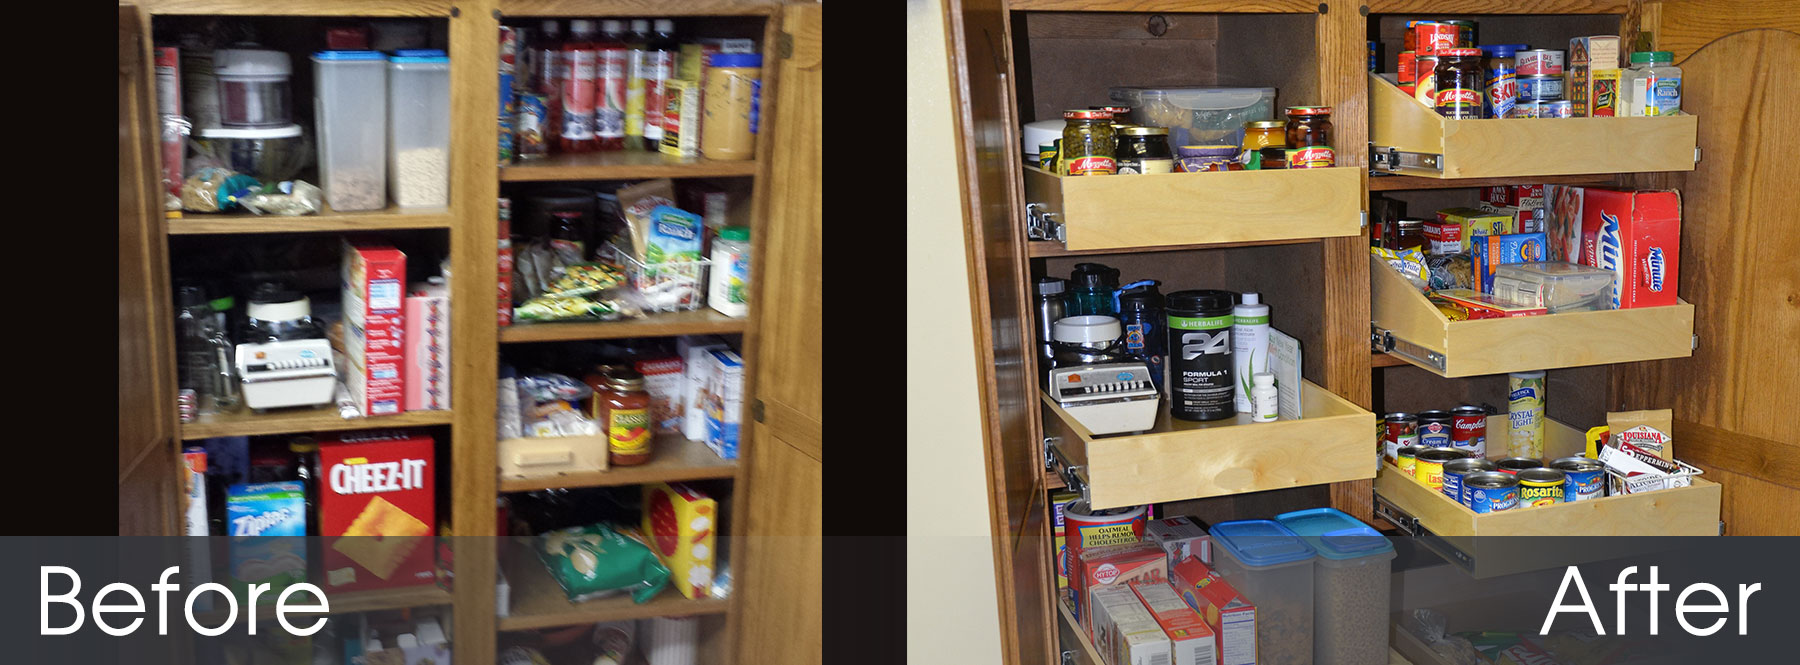 Before / After Shelve Image 8